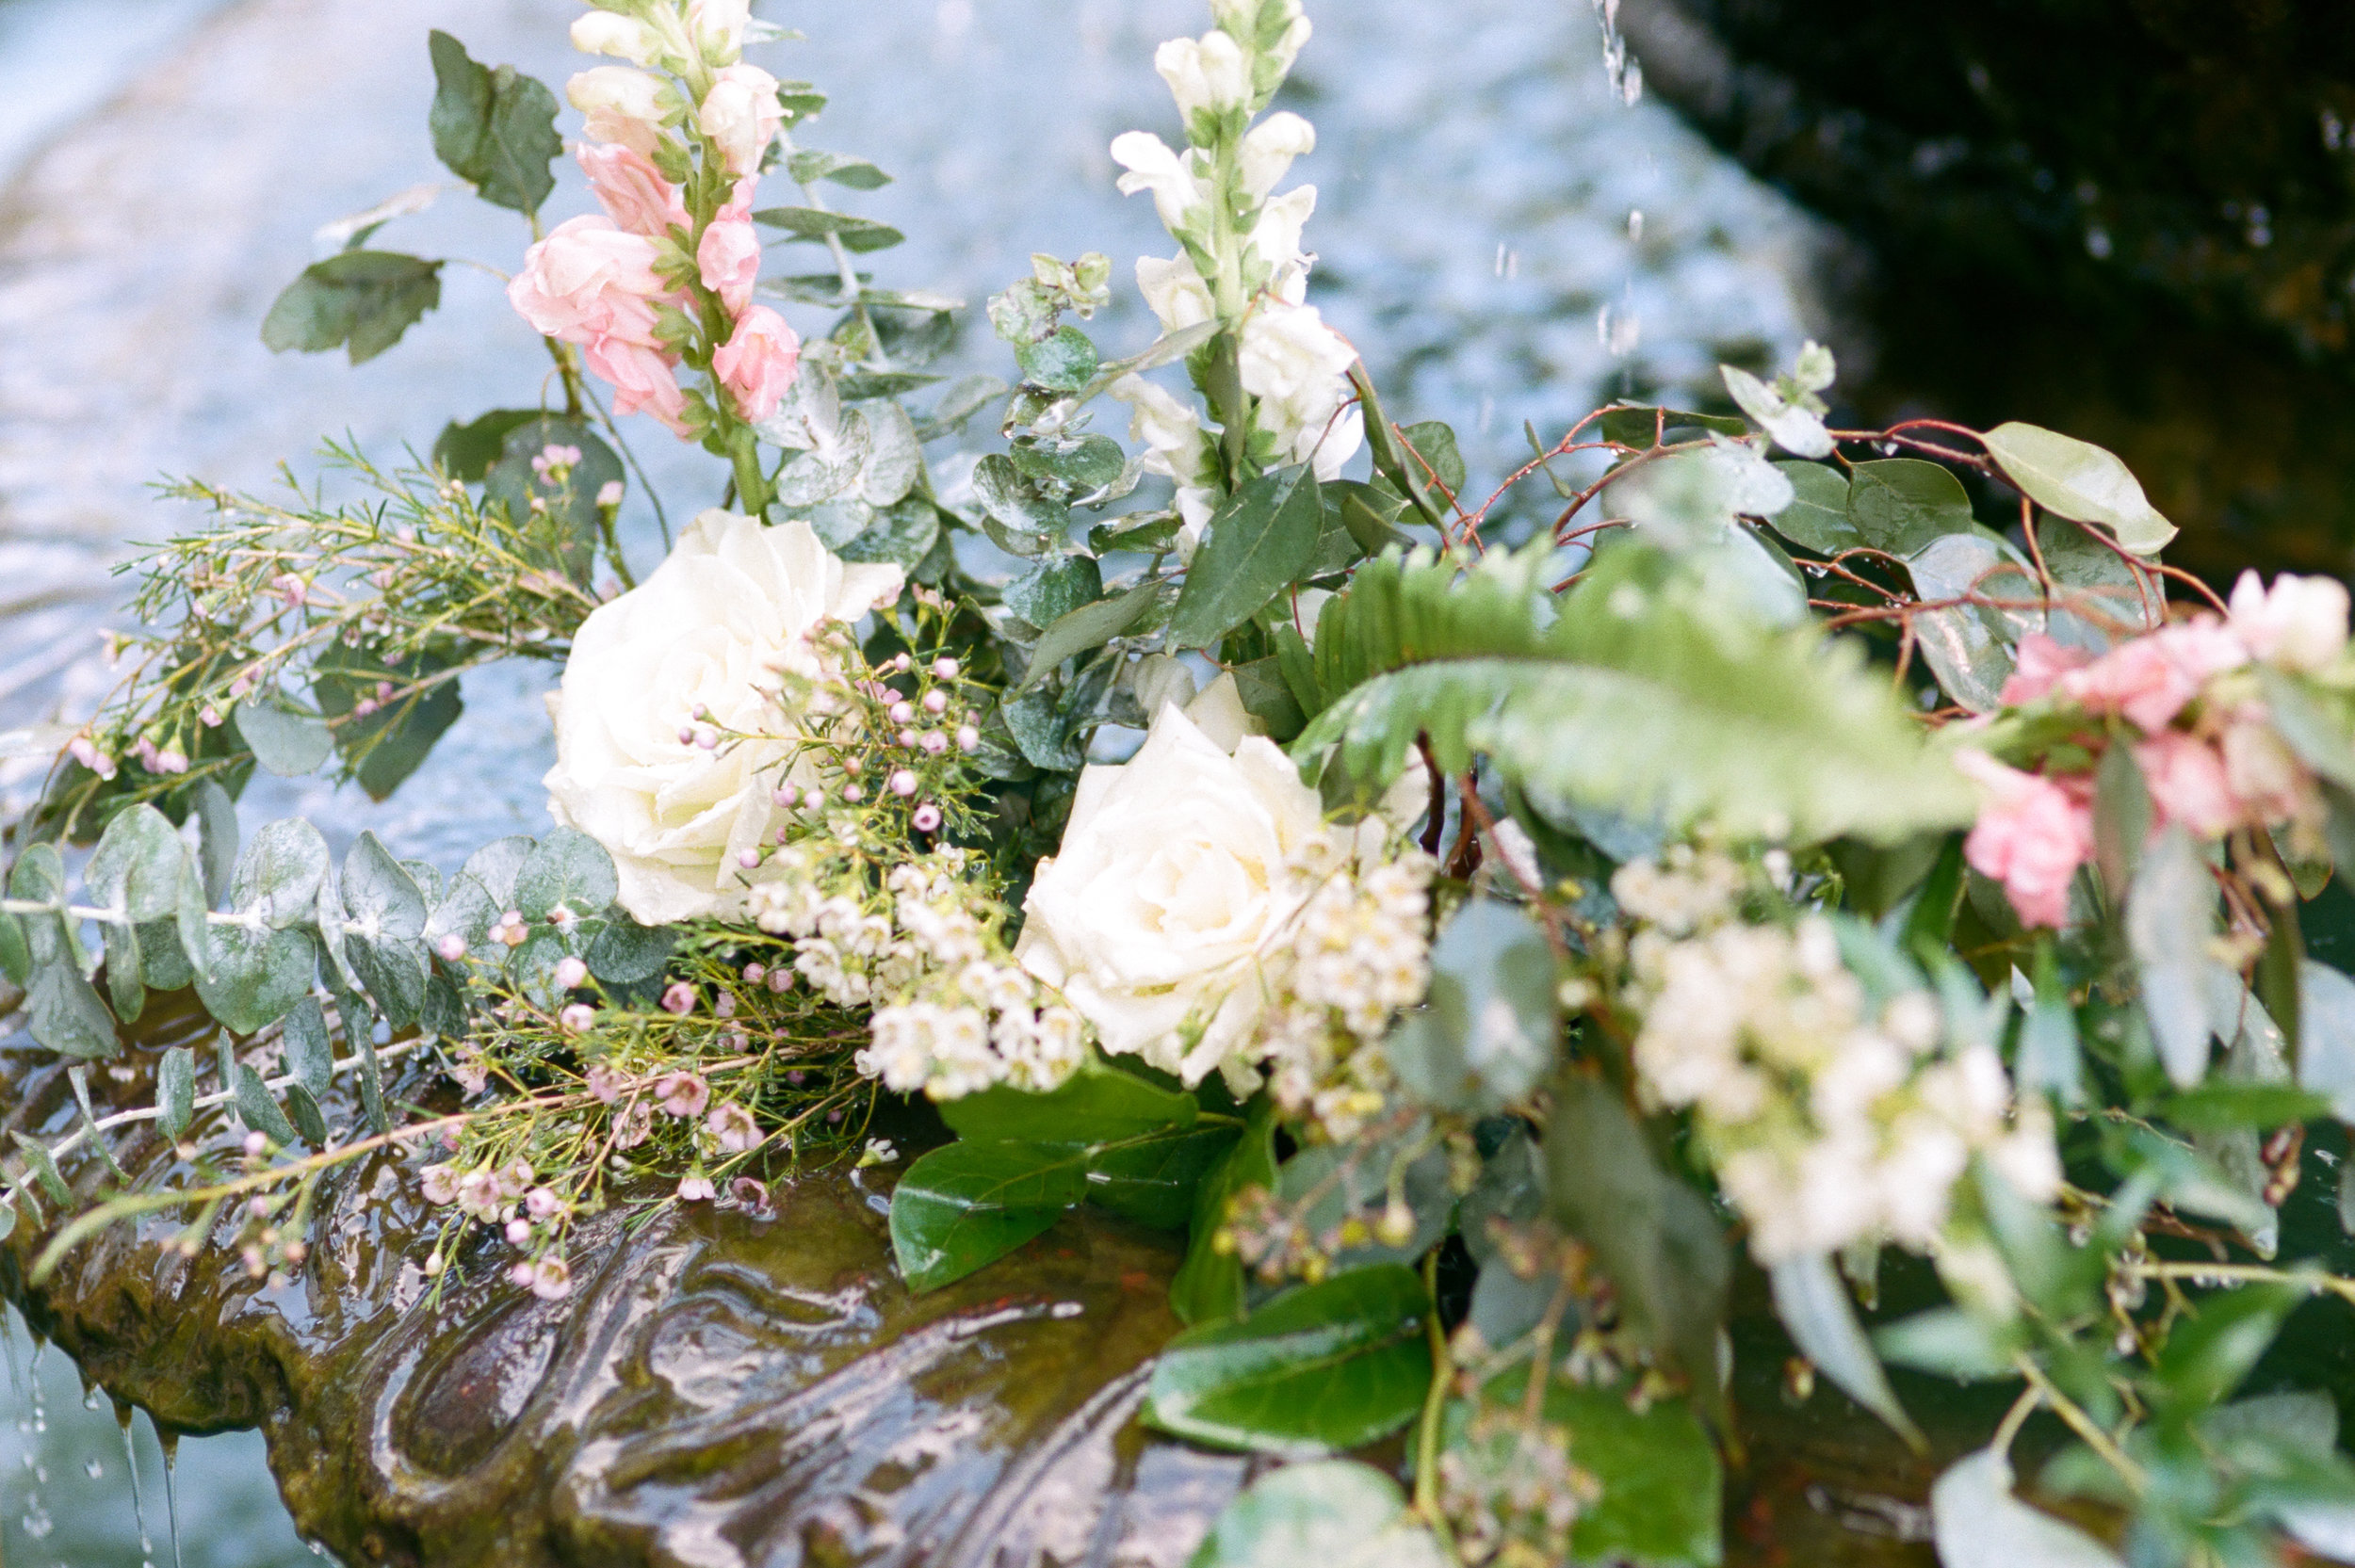 catherineannphotography-wedding-6218-katherinetyler-film-133.jpg